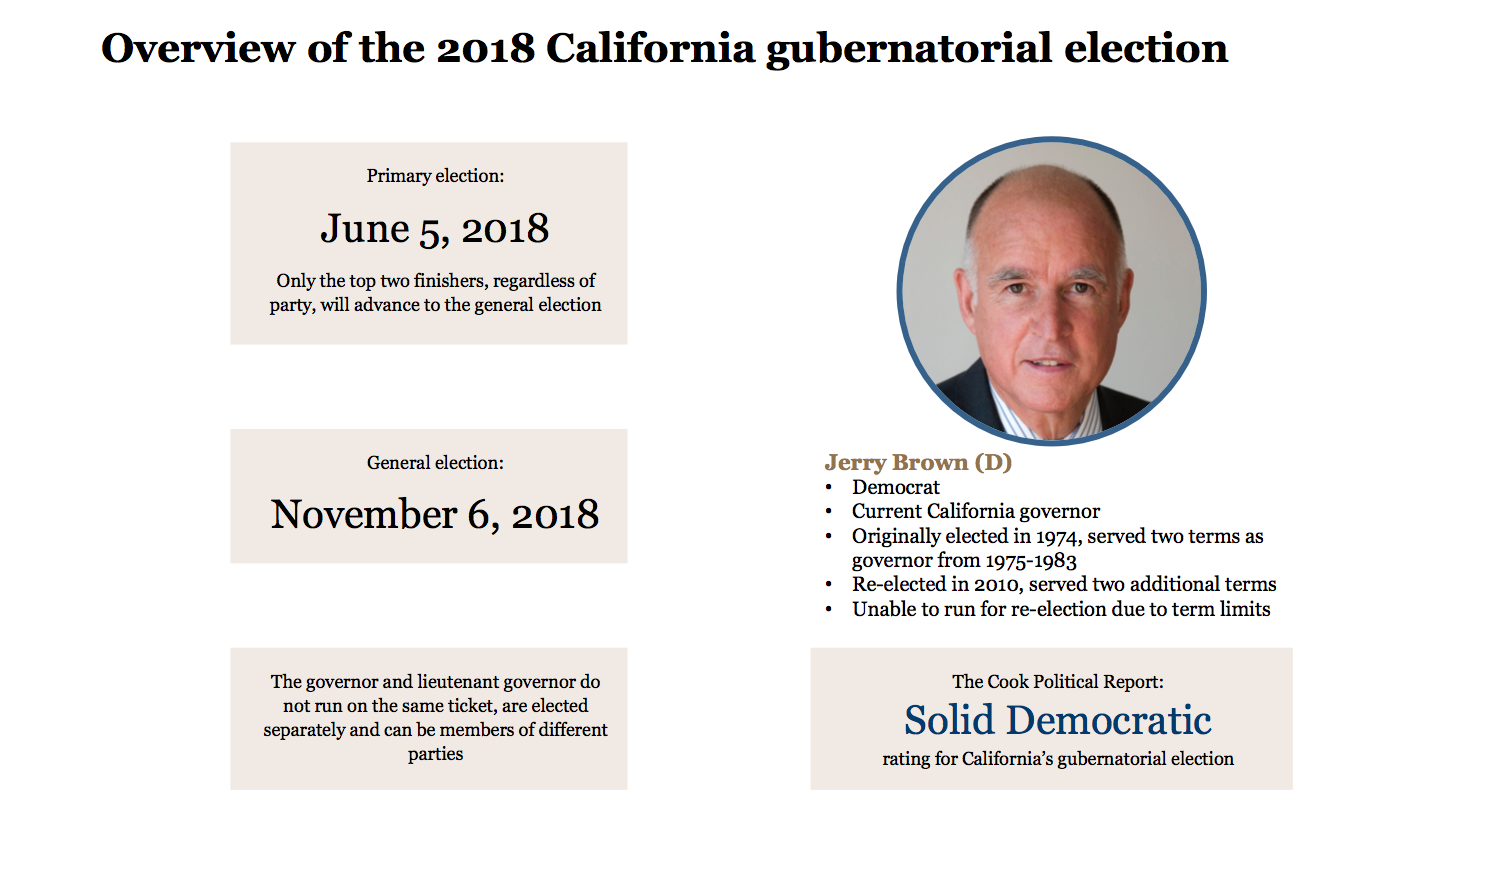 California's 2018 gubernatorial election